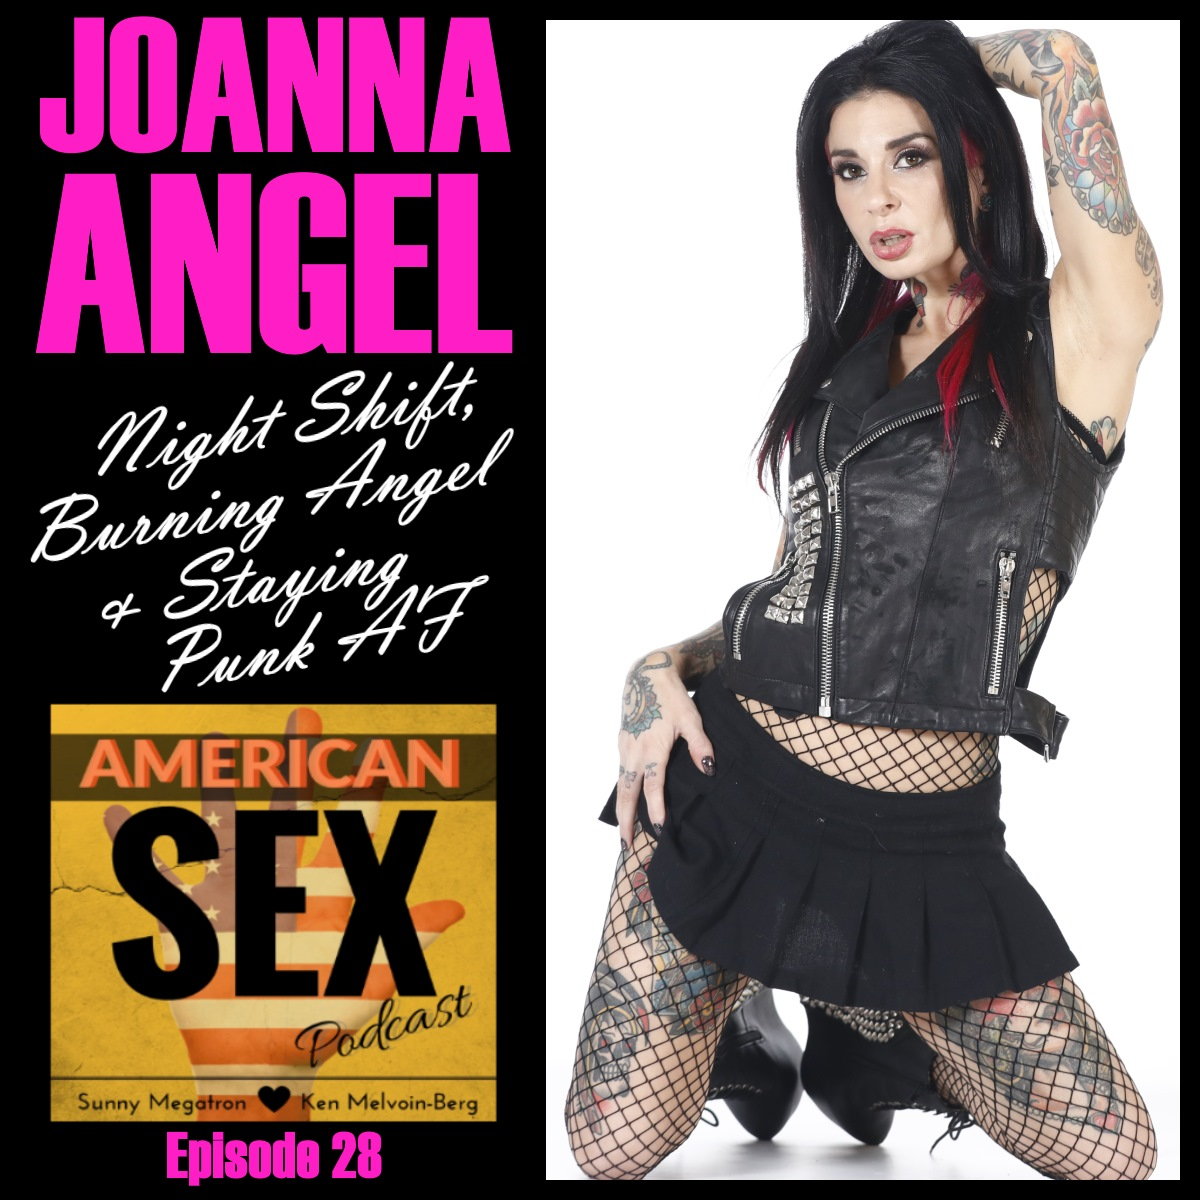 Joanna Angel Night Shift Burning Angel Podcast